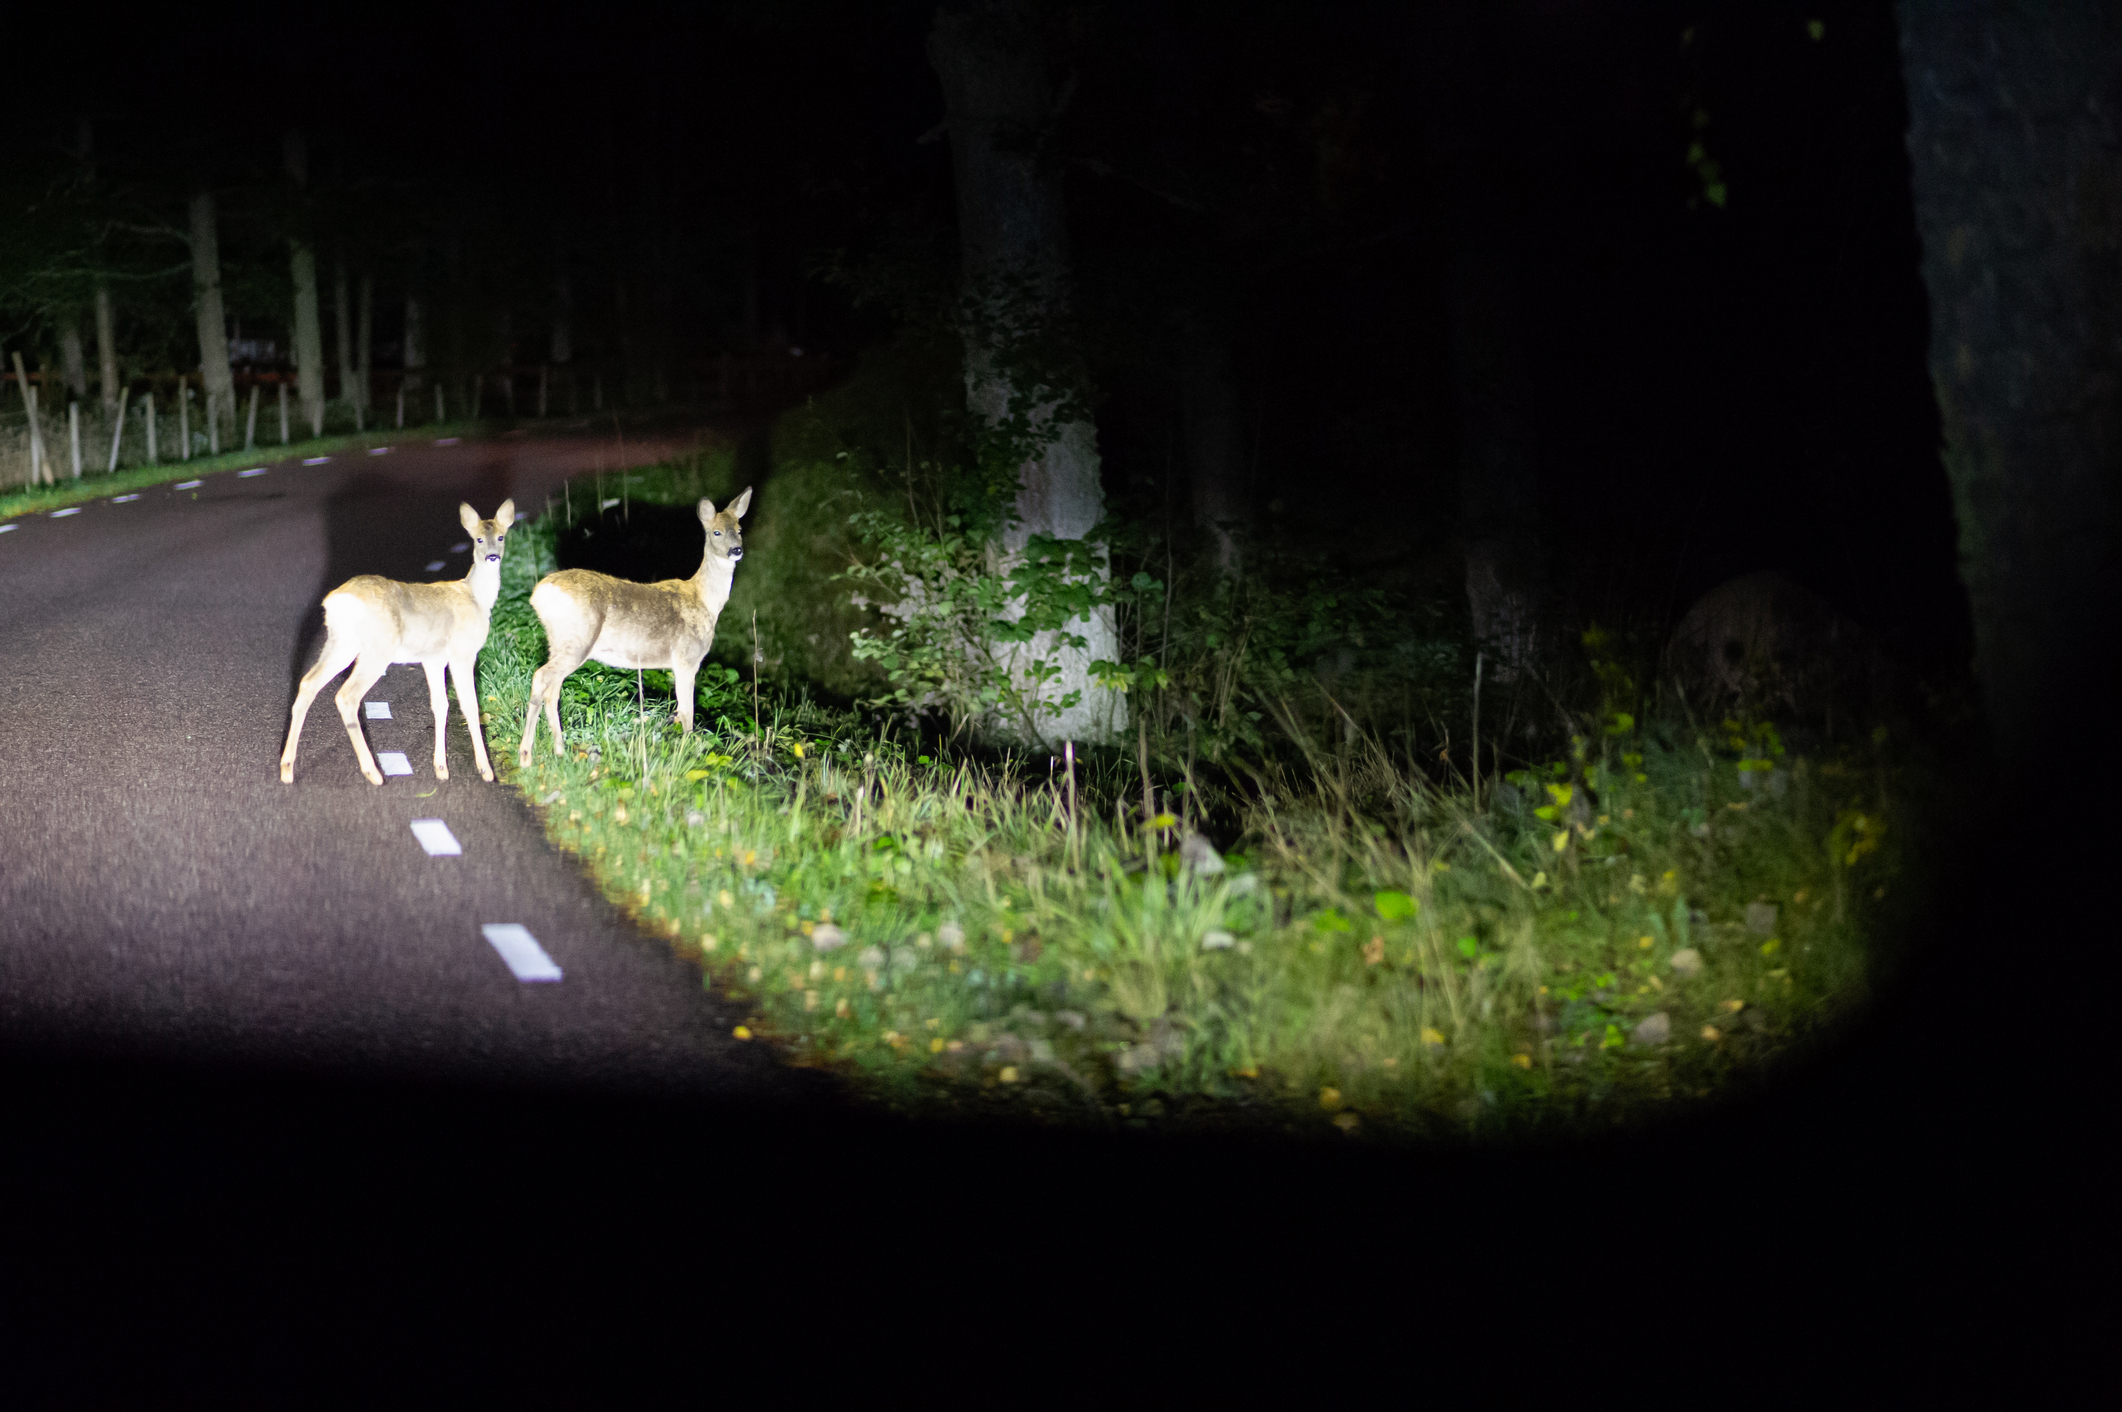 Deer crossing the road seen from the car late at night